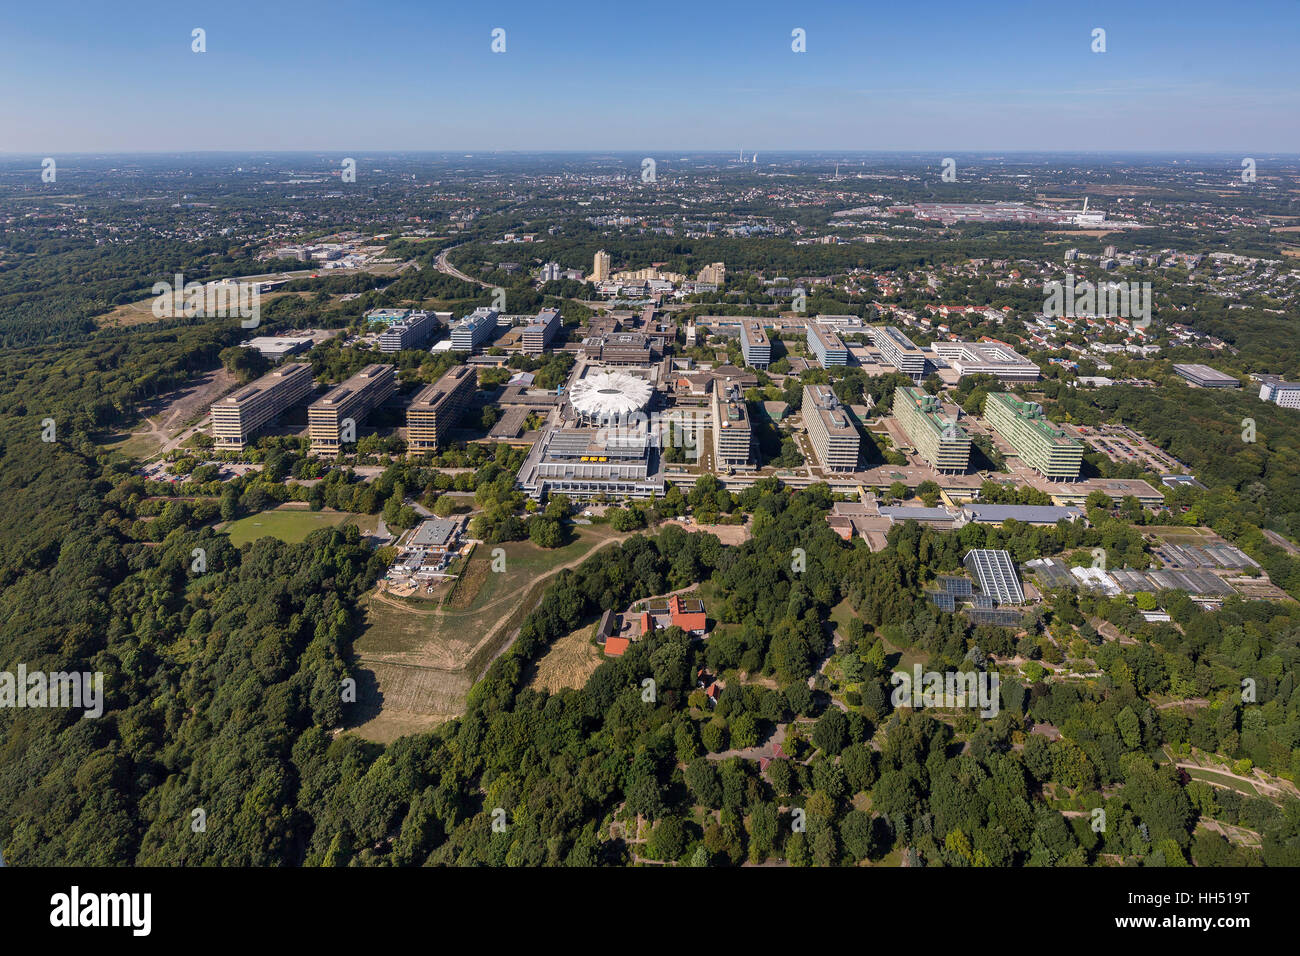 Ruhr university Bochum with Audi-Max, campus, RUB, Bochum, Ruhr area, Germany, Europe, bird-eyes view, aerial photo, - Stock Image